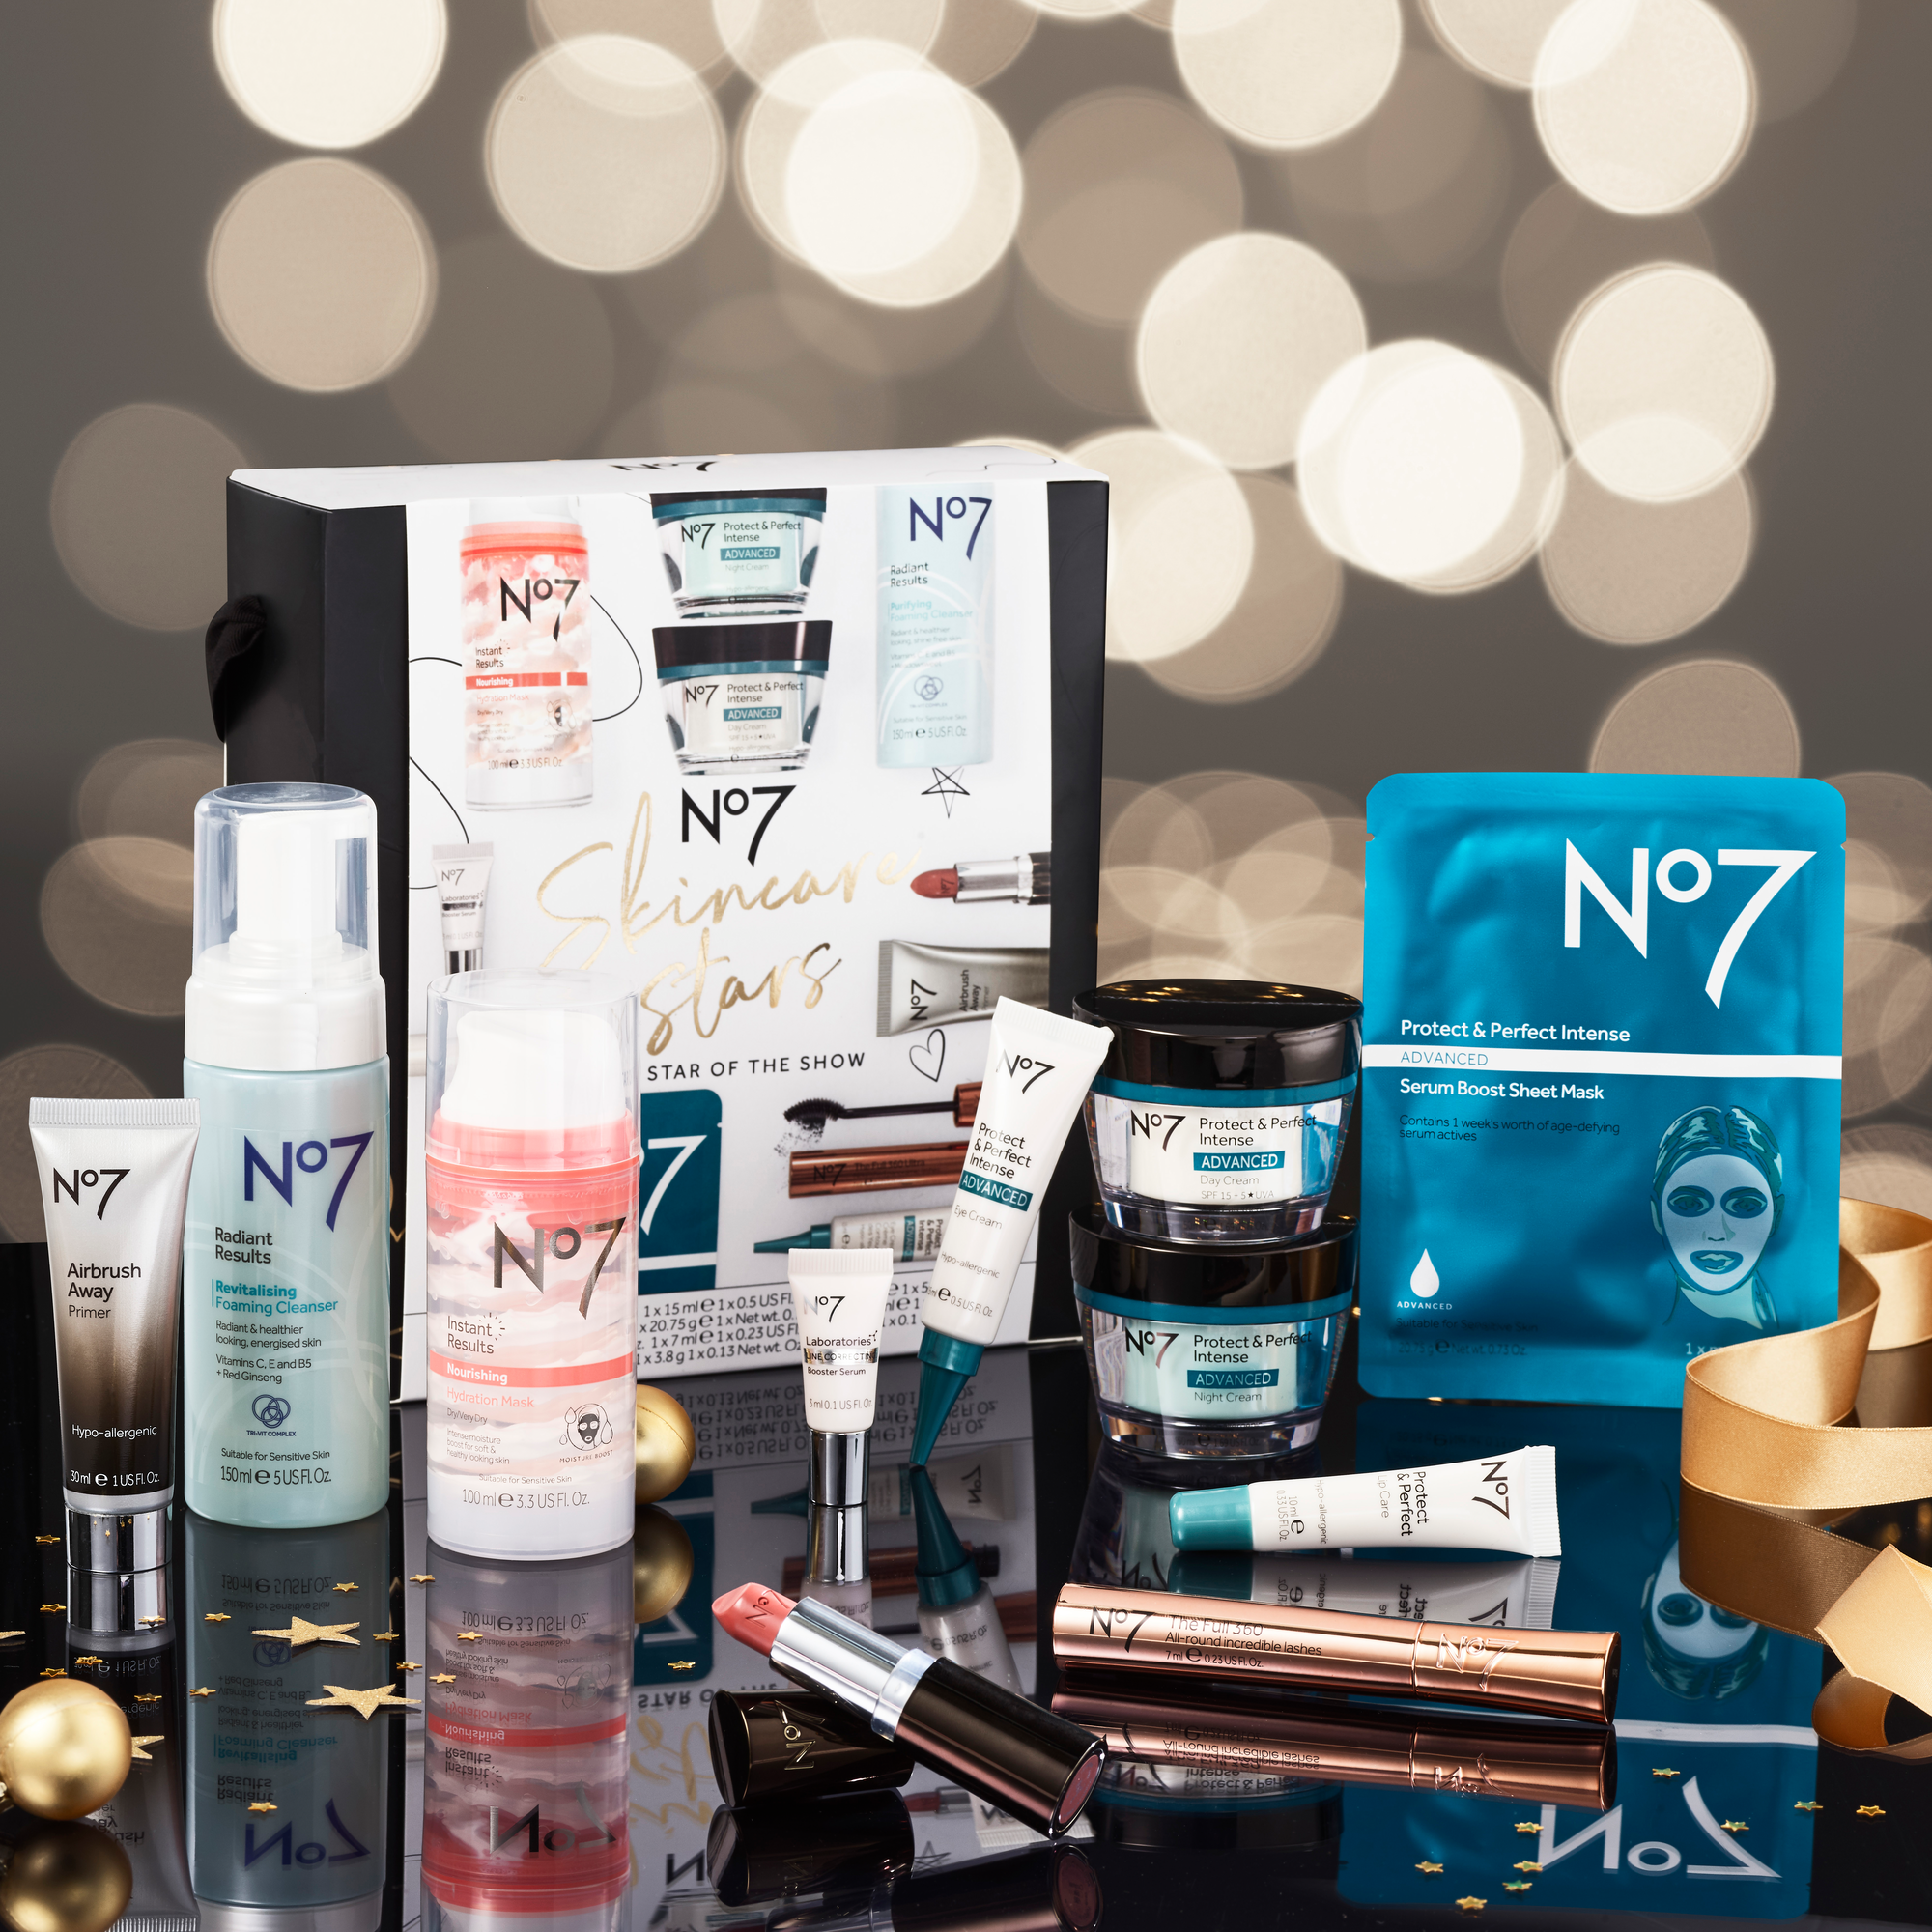 This Christmas make yourself The Star of the Show with No7's skincare must-haves from Boots!